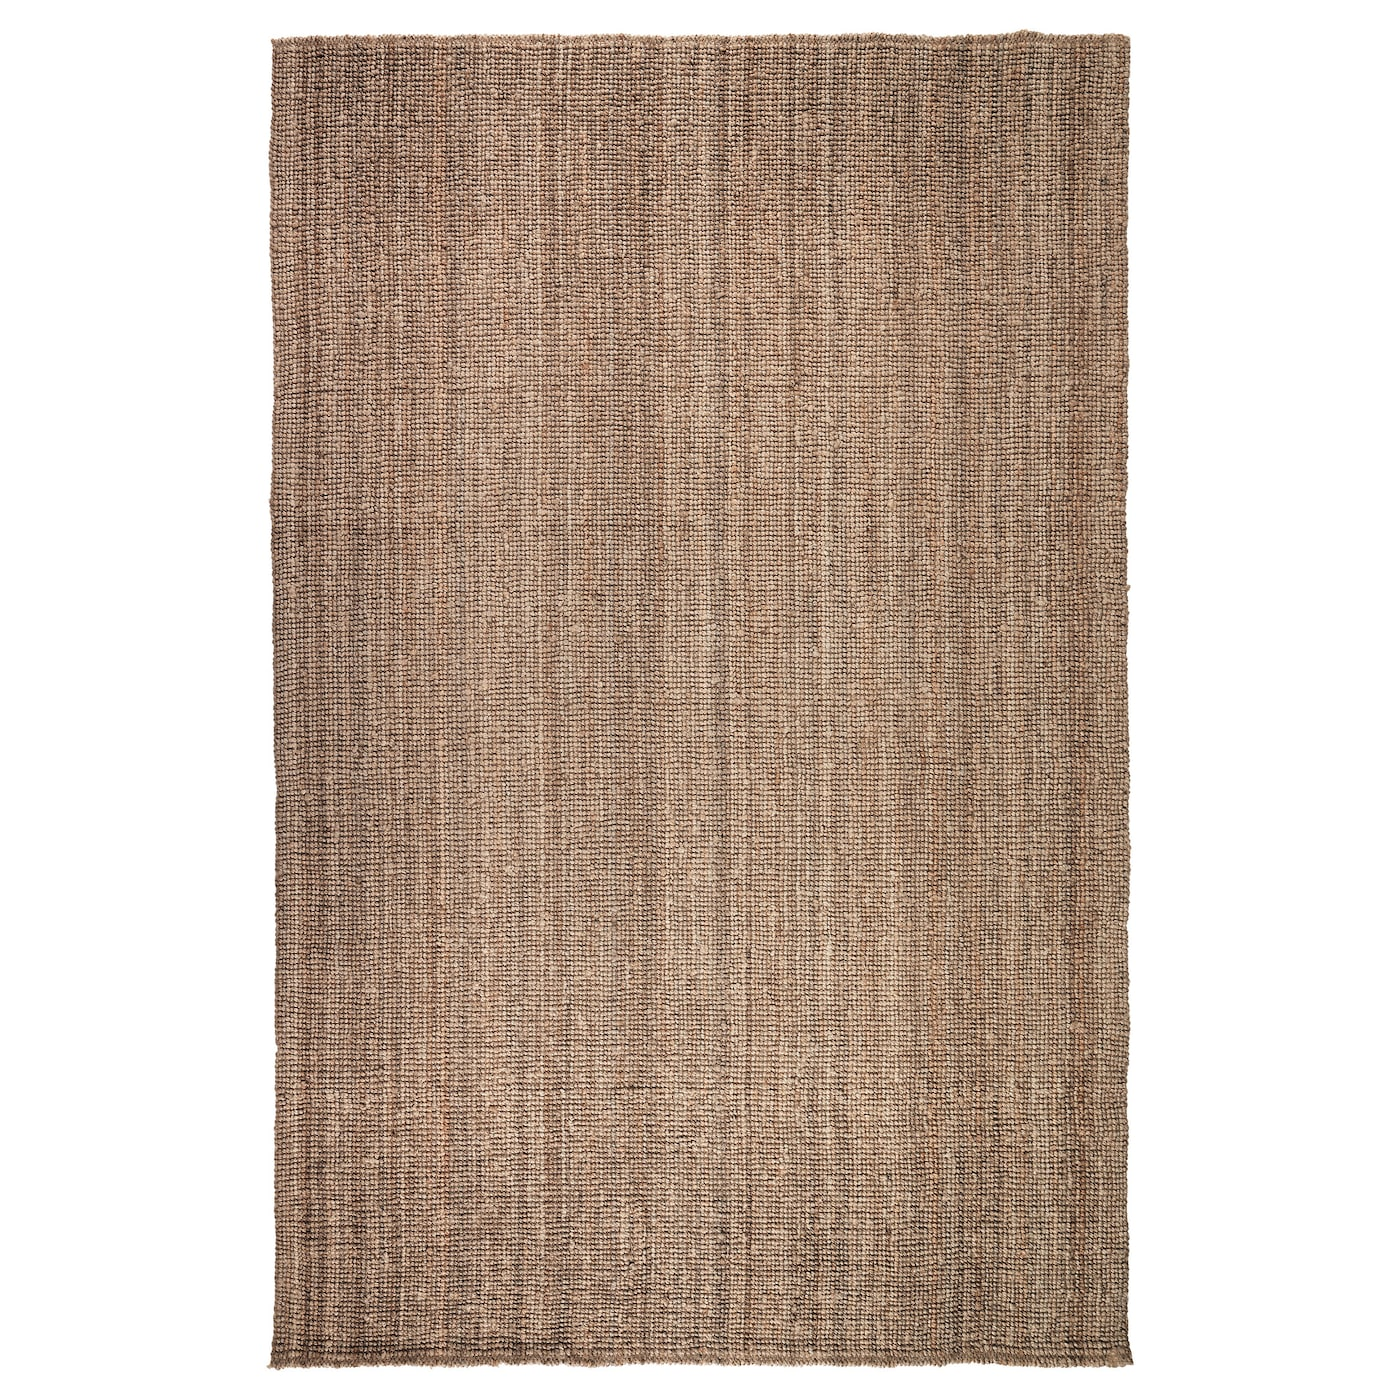 Ikea Lohals Rug Flatwoven Jute Is A Durable And Recyclable Material With Natural Colour Variations